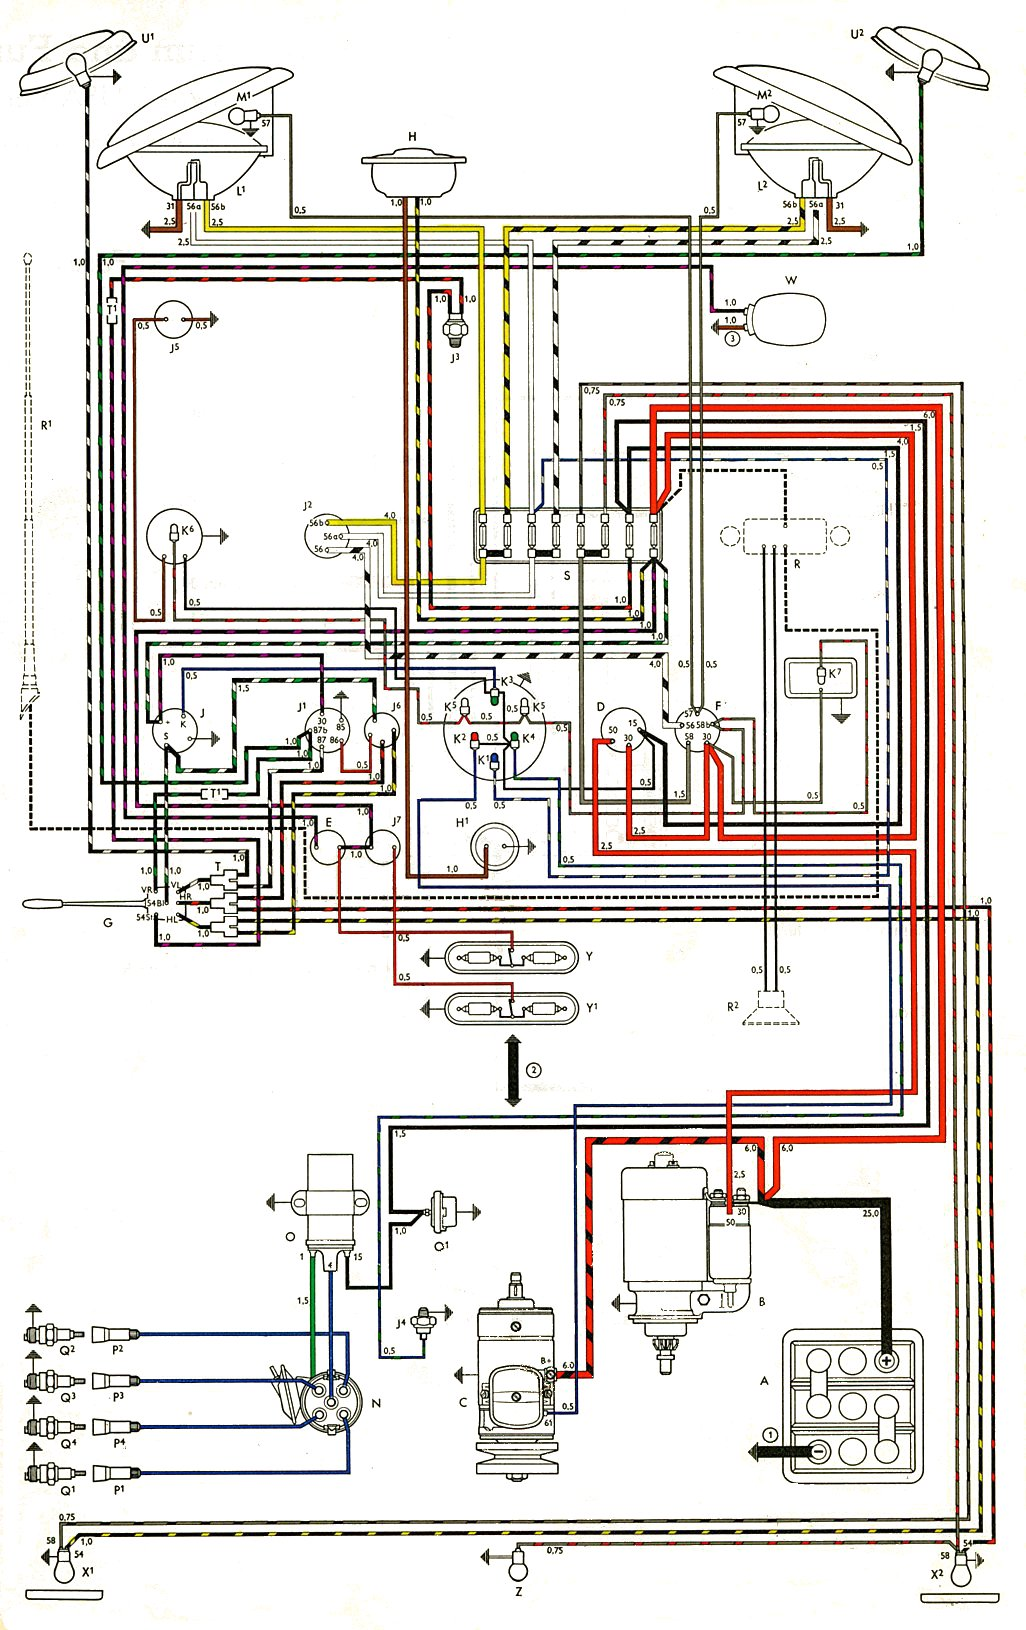 bus_63_USA thesamba com type 2 wiring diagrams 1960 vw bus wiring diagram at fashall.co